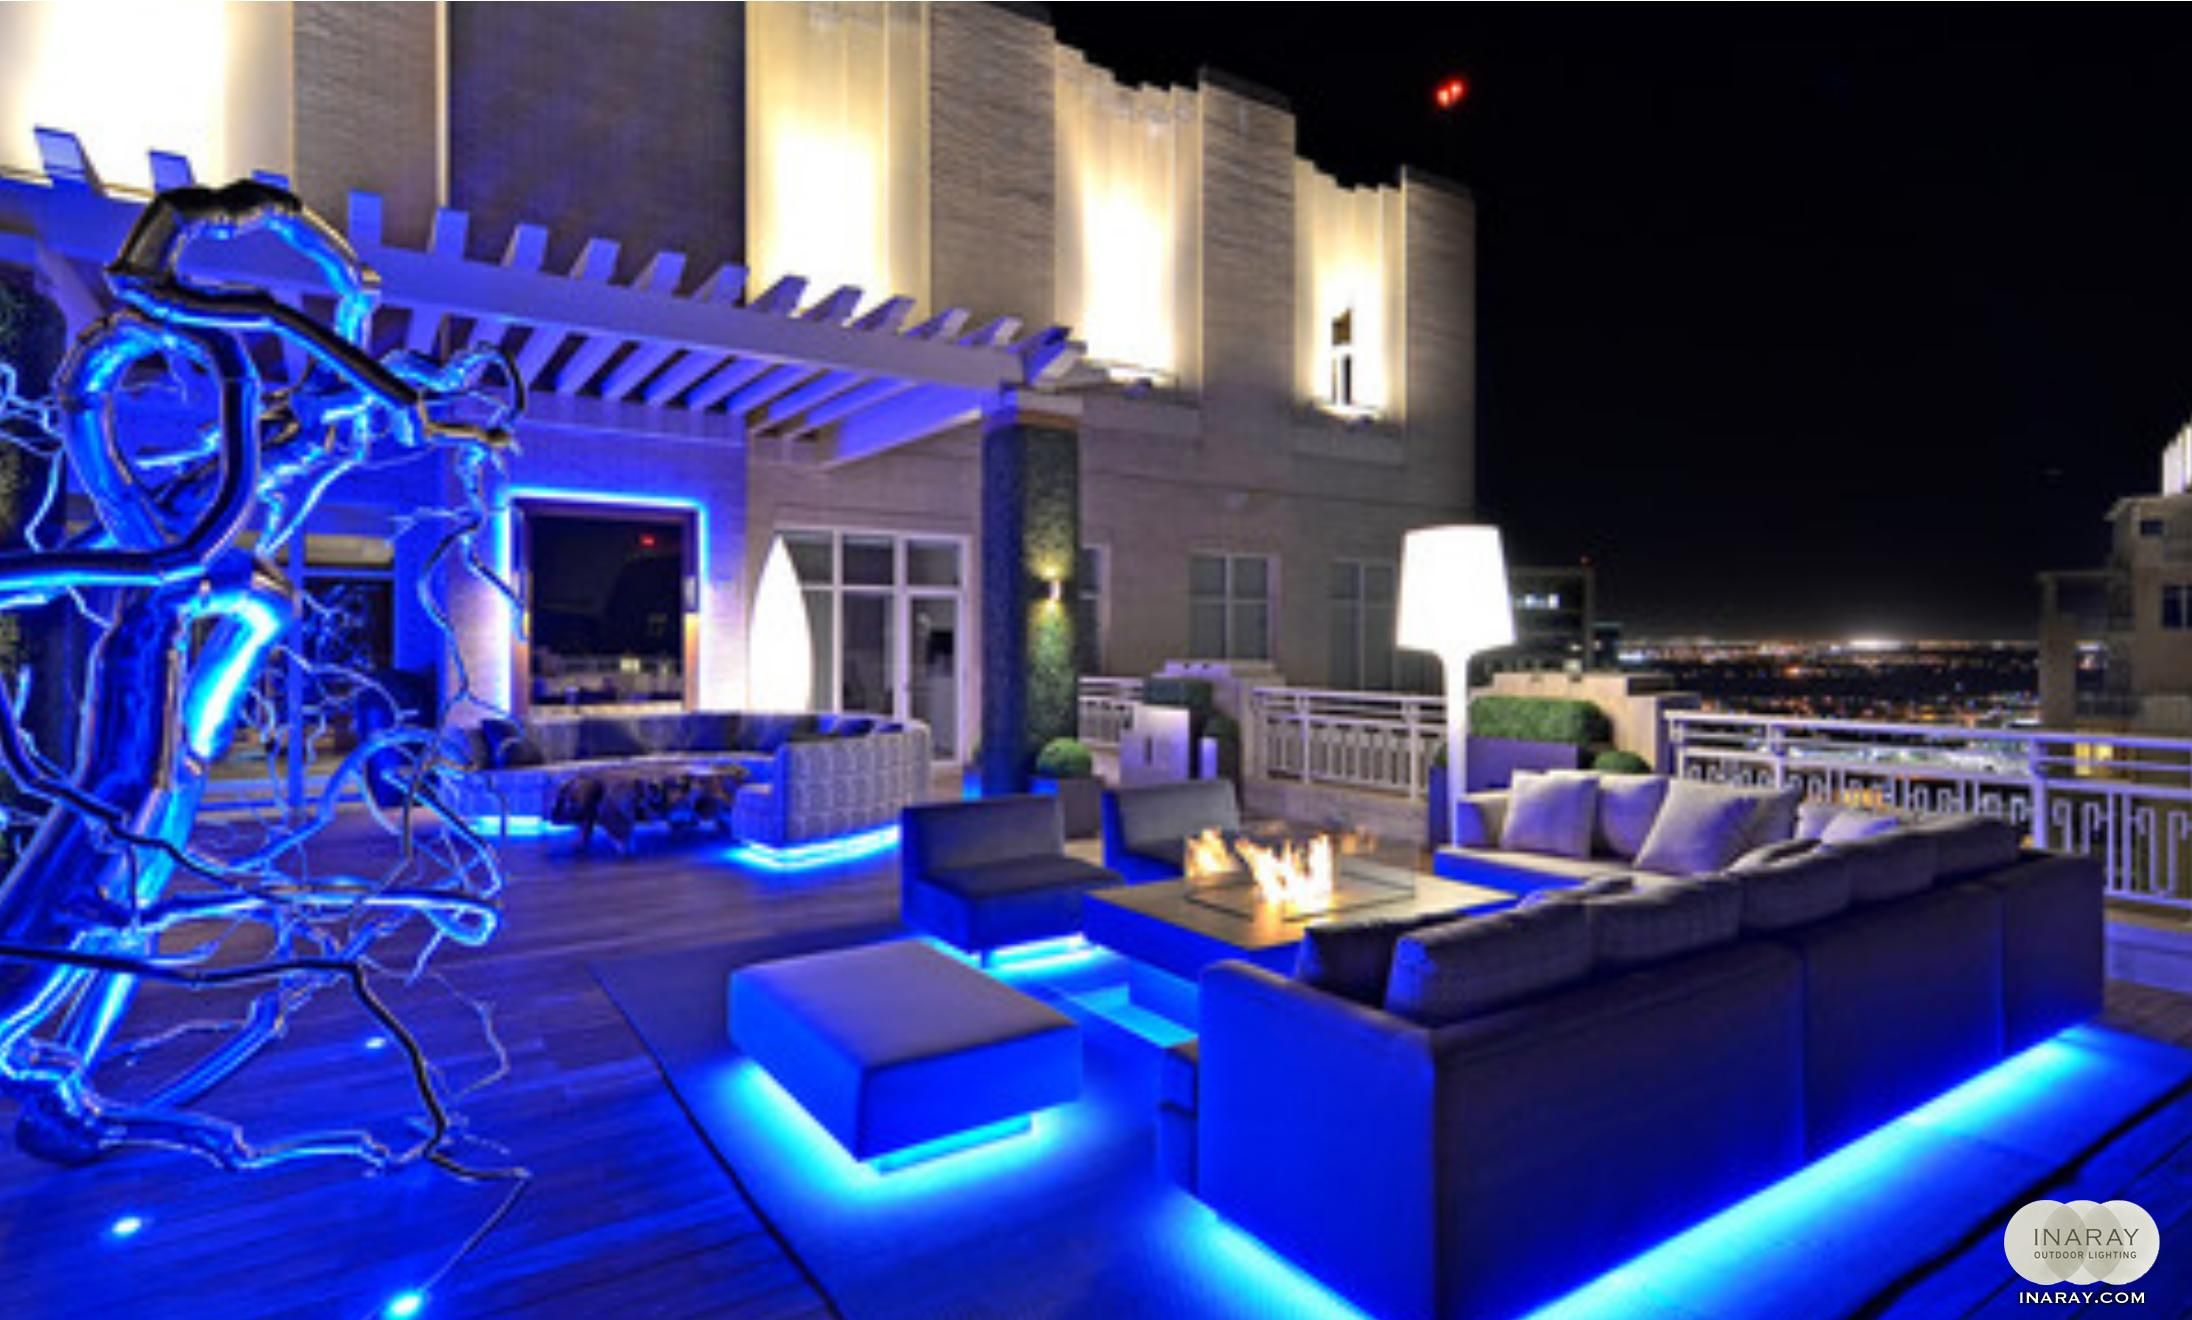 Beau Led Can Light Fixtures Cool Blue Led Indoor Lighting Under Sofa Design  Interior Home Opens Up Outdoor Living Room Decorating Ideas Home Interior  Lighting, ...